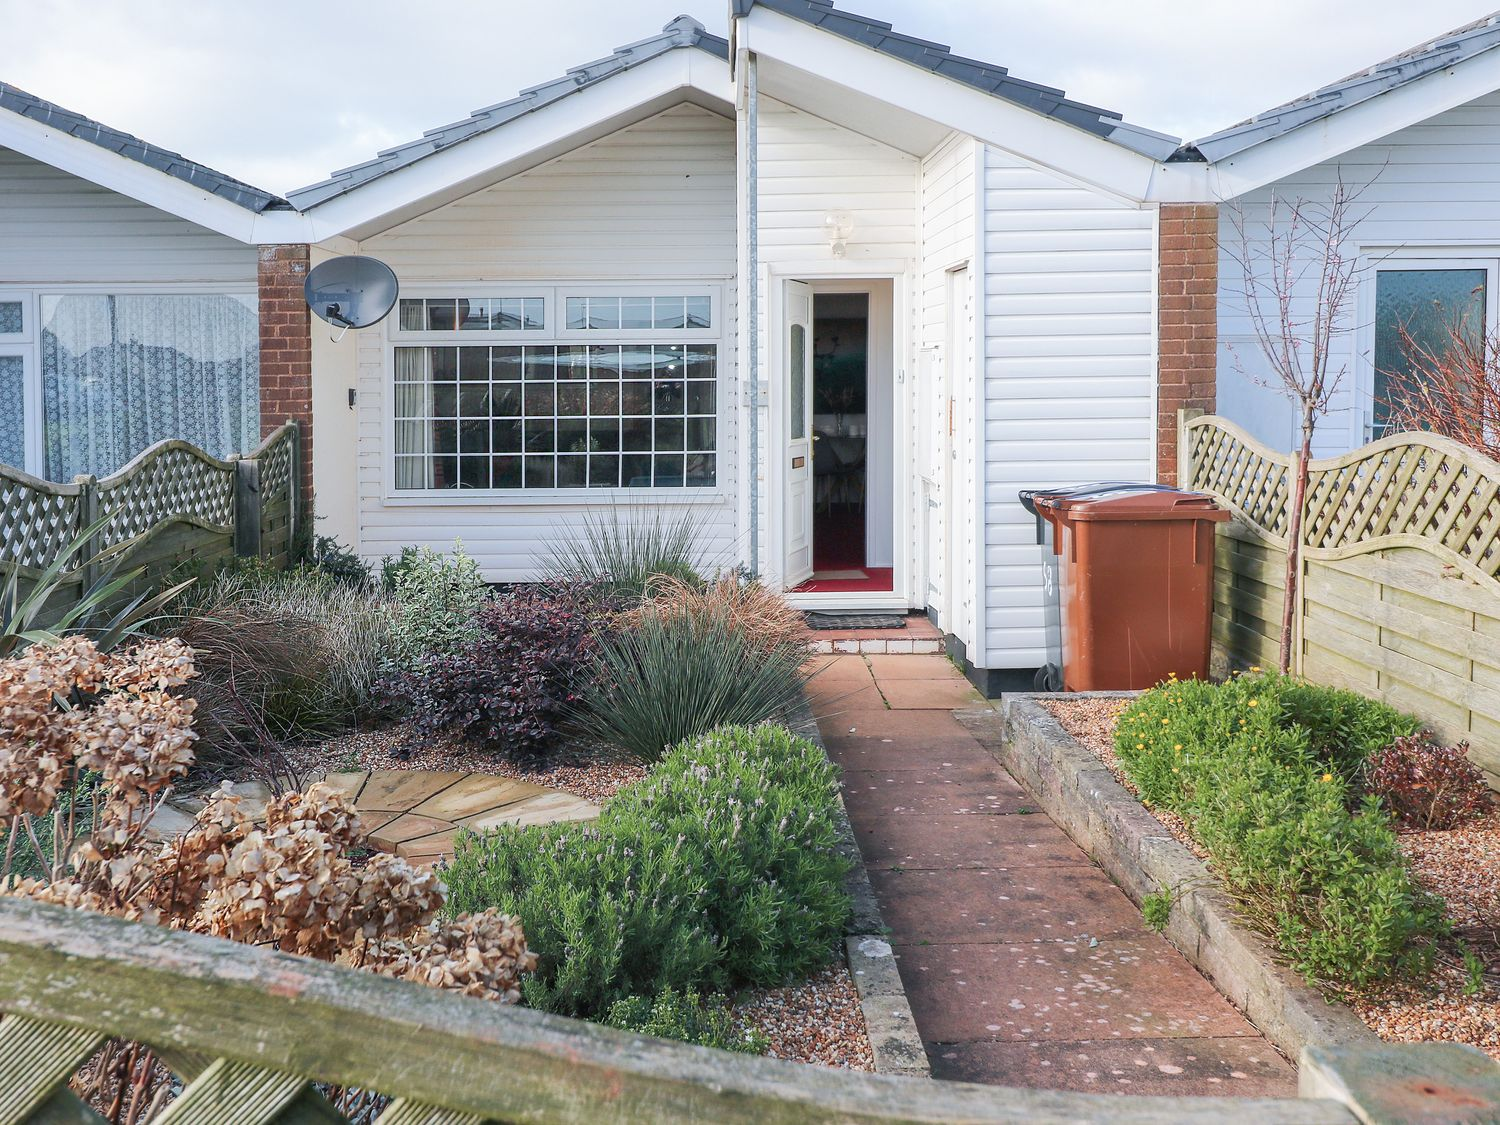 58 Cumber Close - Devon - 1039286 - photo 1